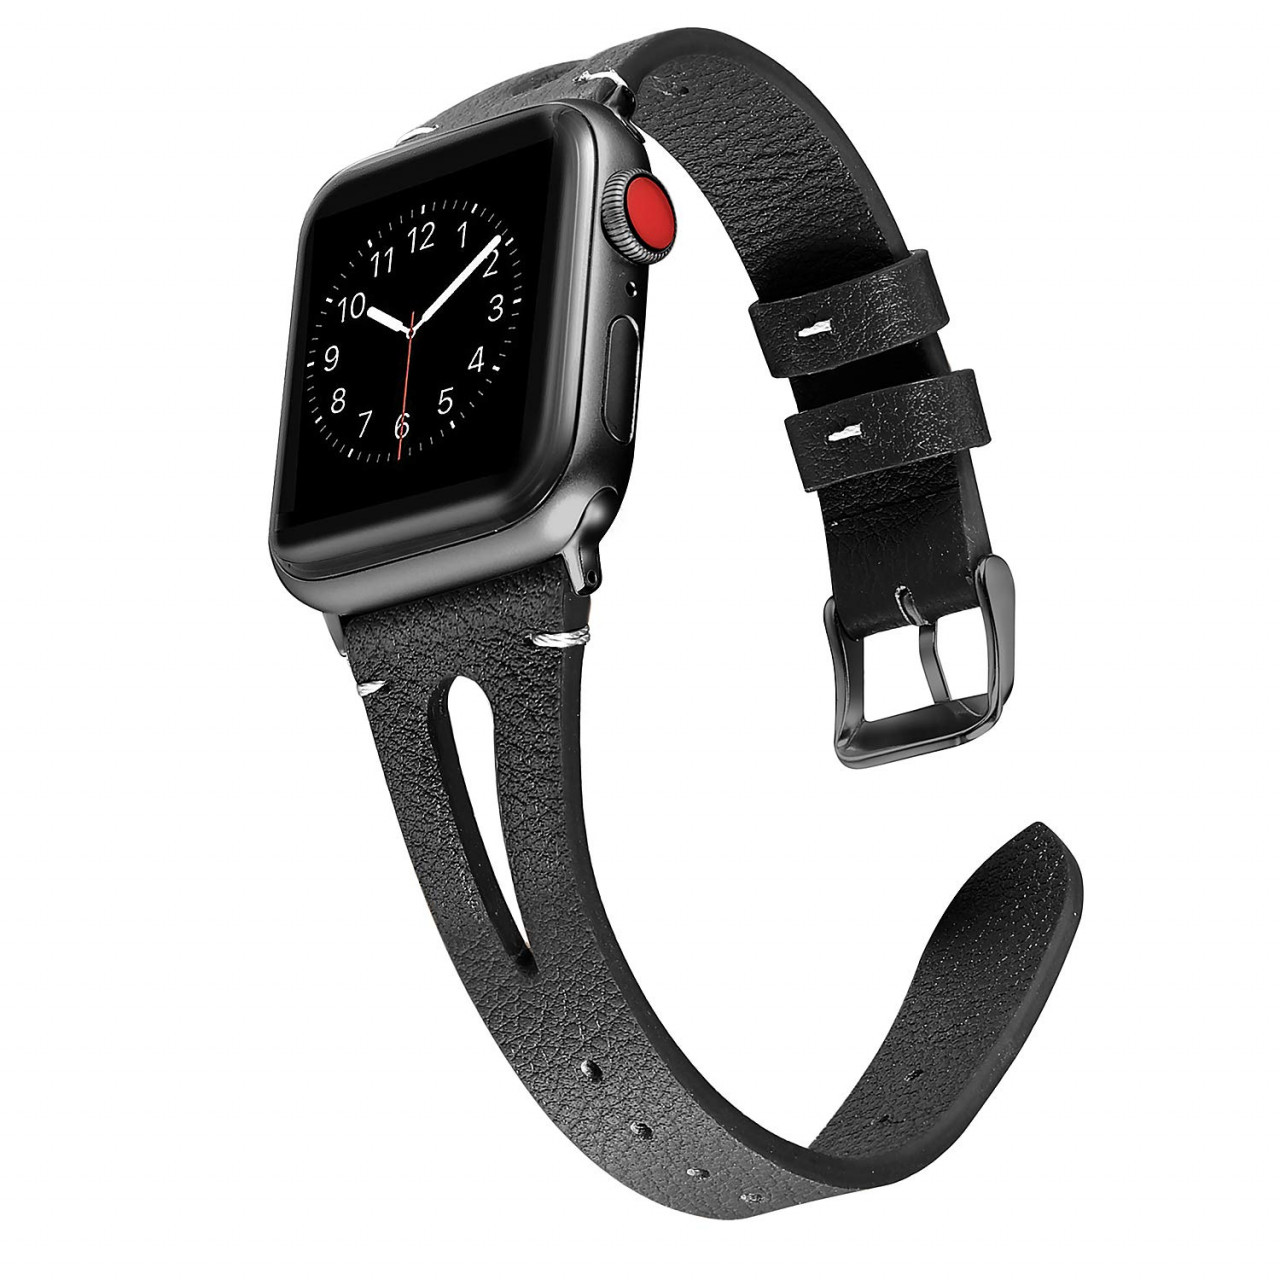 Apple Leather Bands Compatible With Apple Watch Nike Edition Price